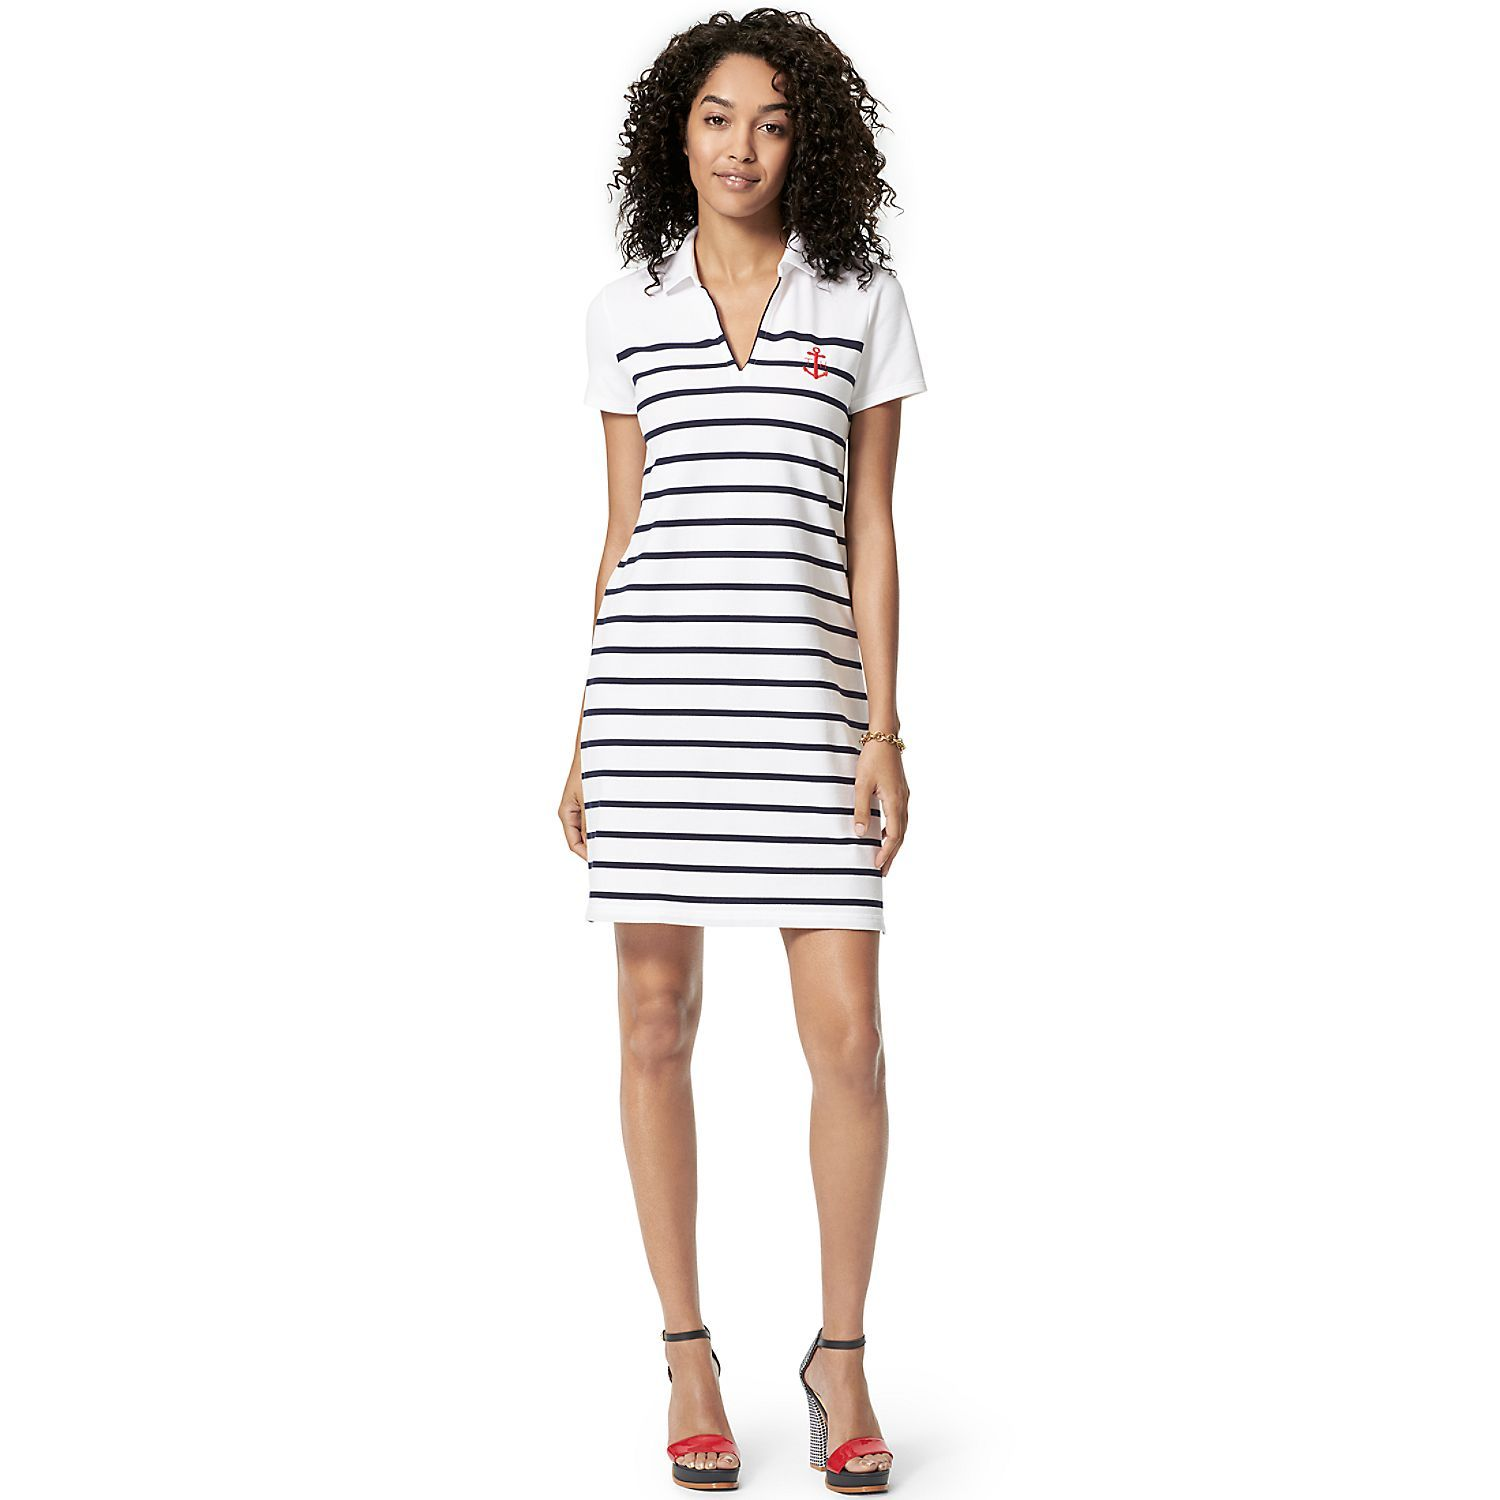 8ef5e08d06e Tommy Hilfiger šaty Stripe POLO DRESS